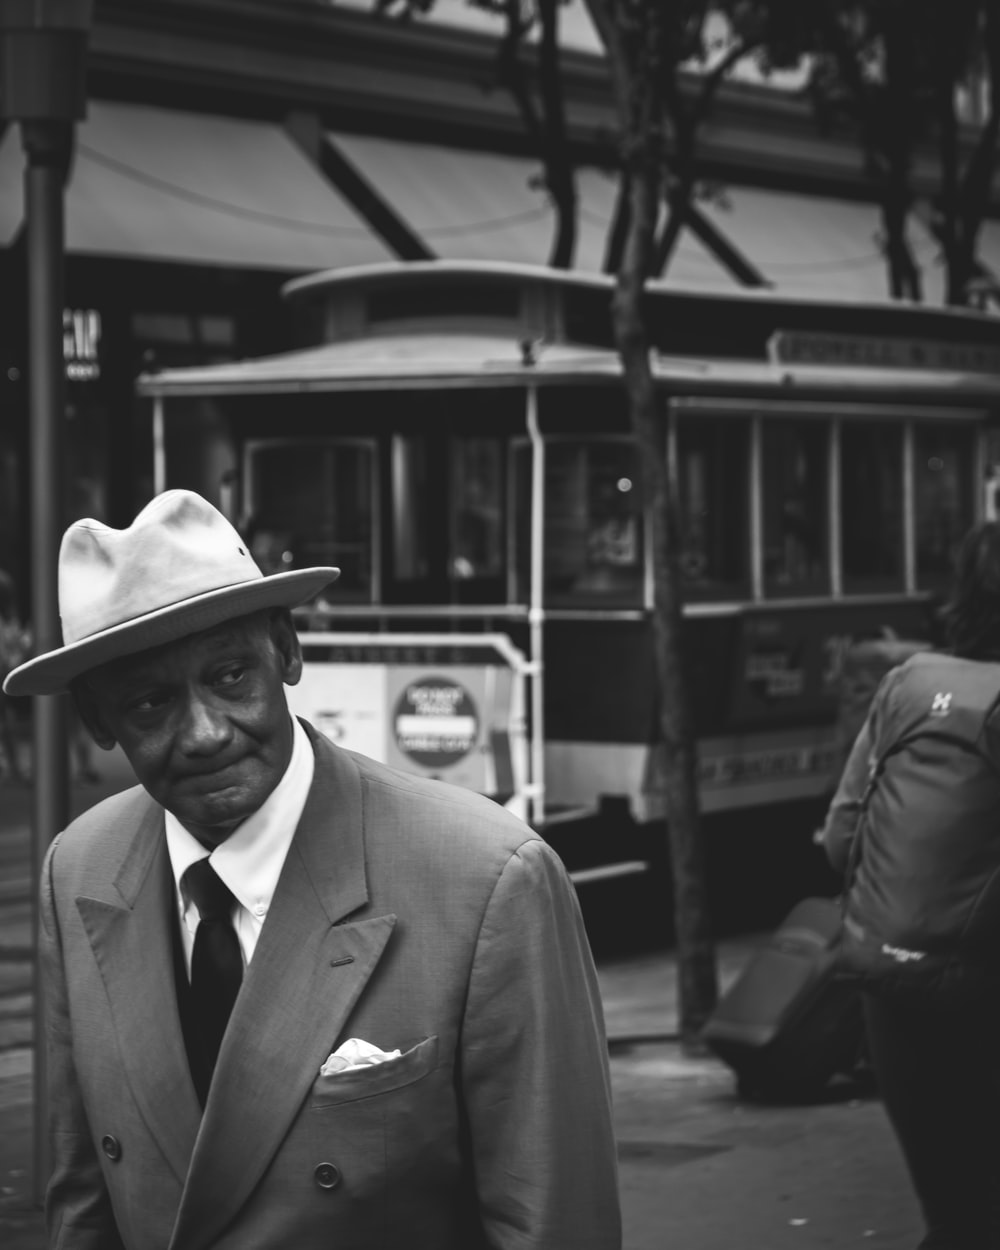 grayscale photo of man wearing suit jacket